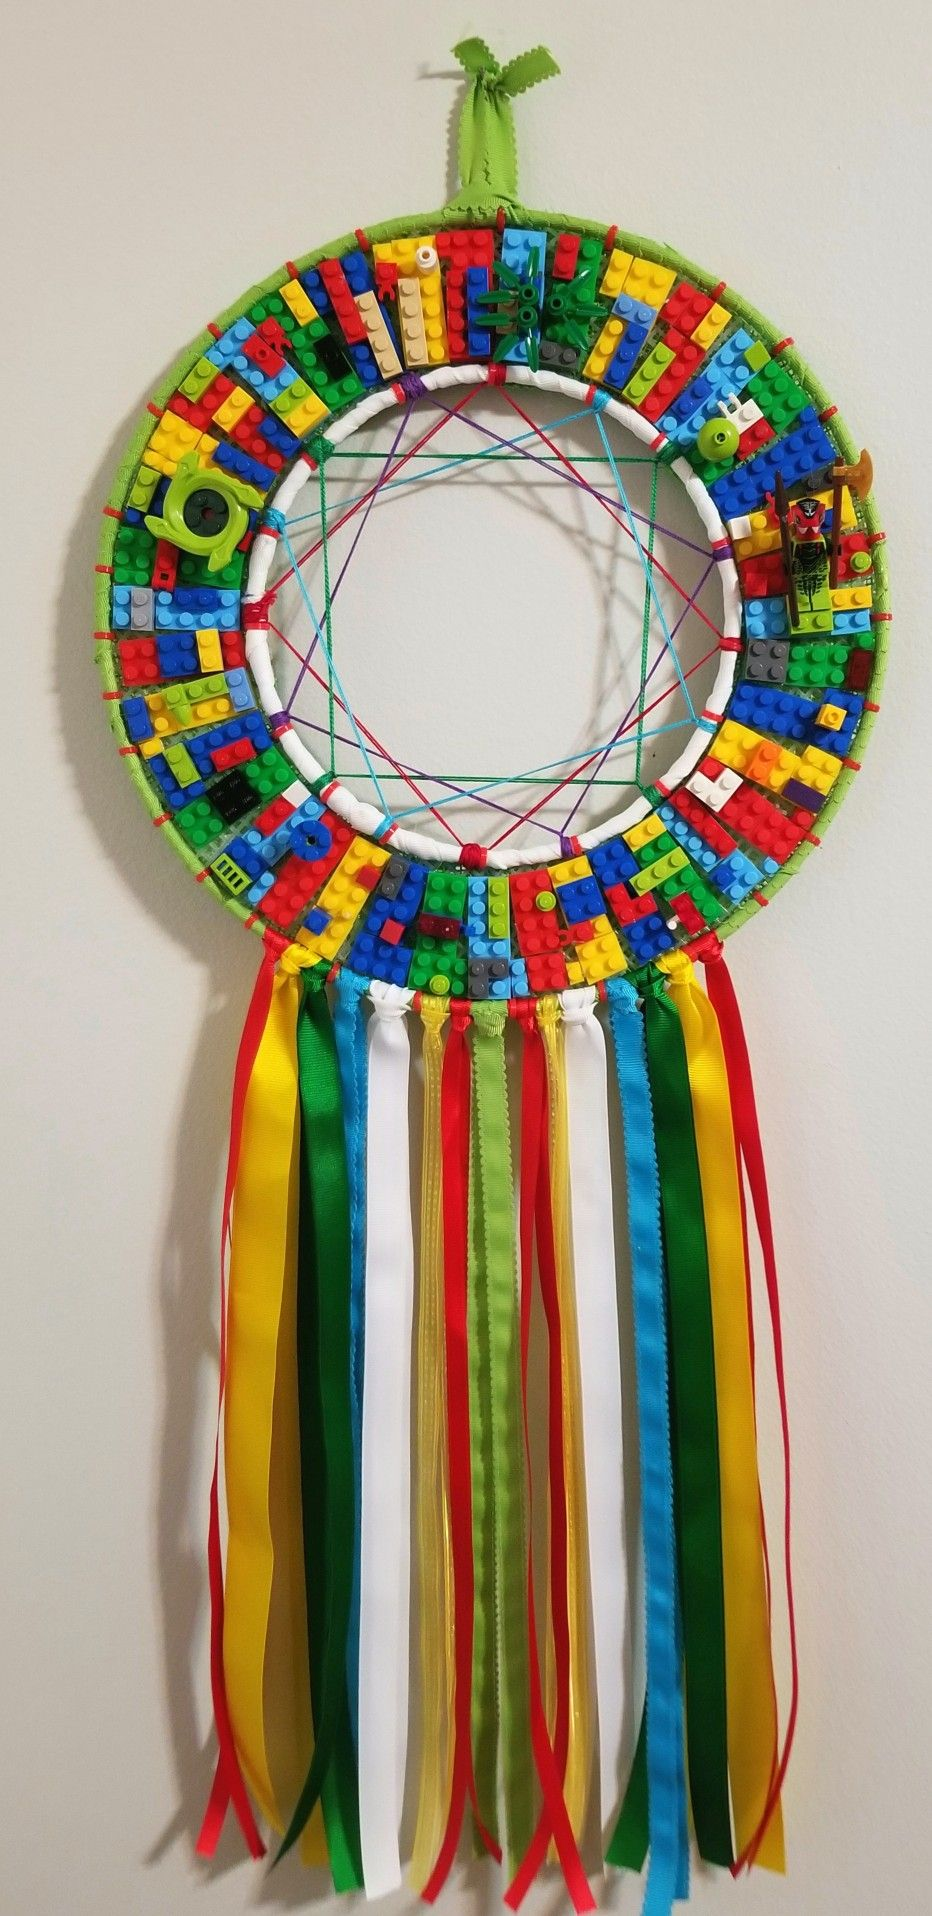 Lego Fun Dreamcatcher, green, red, yellow, colorful, real